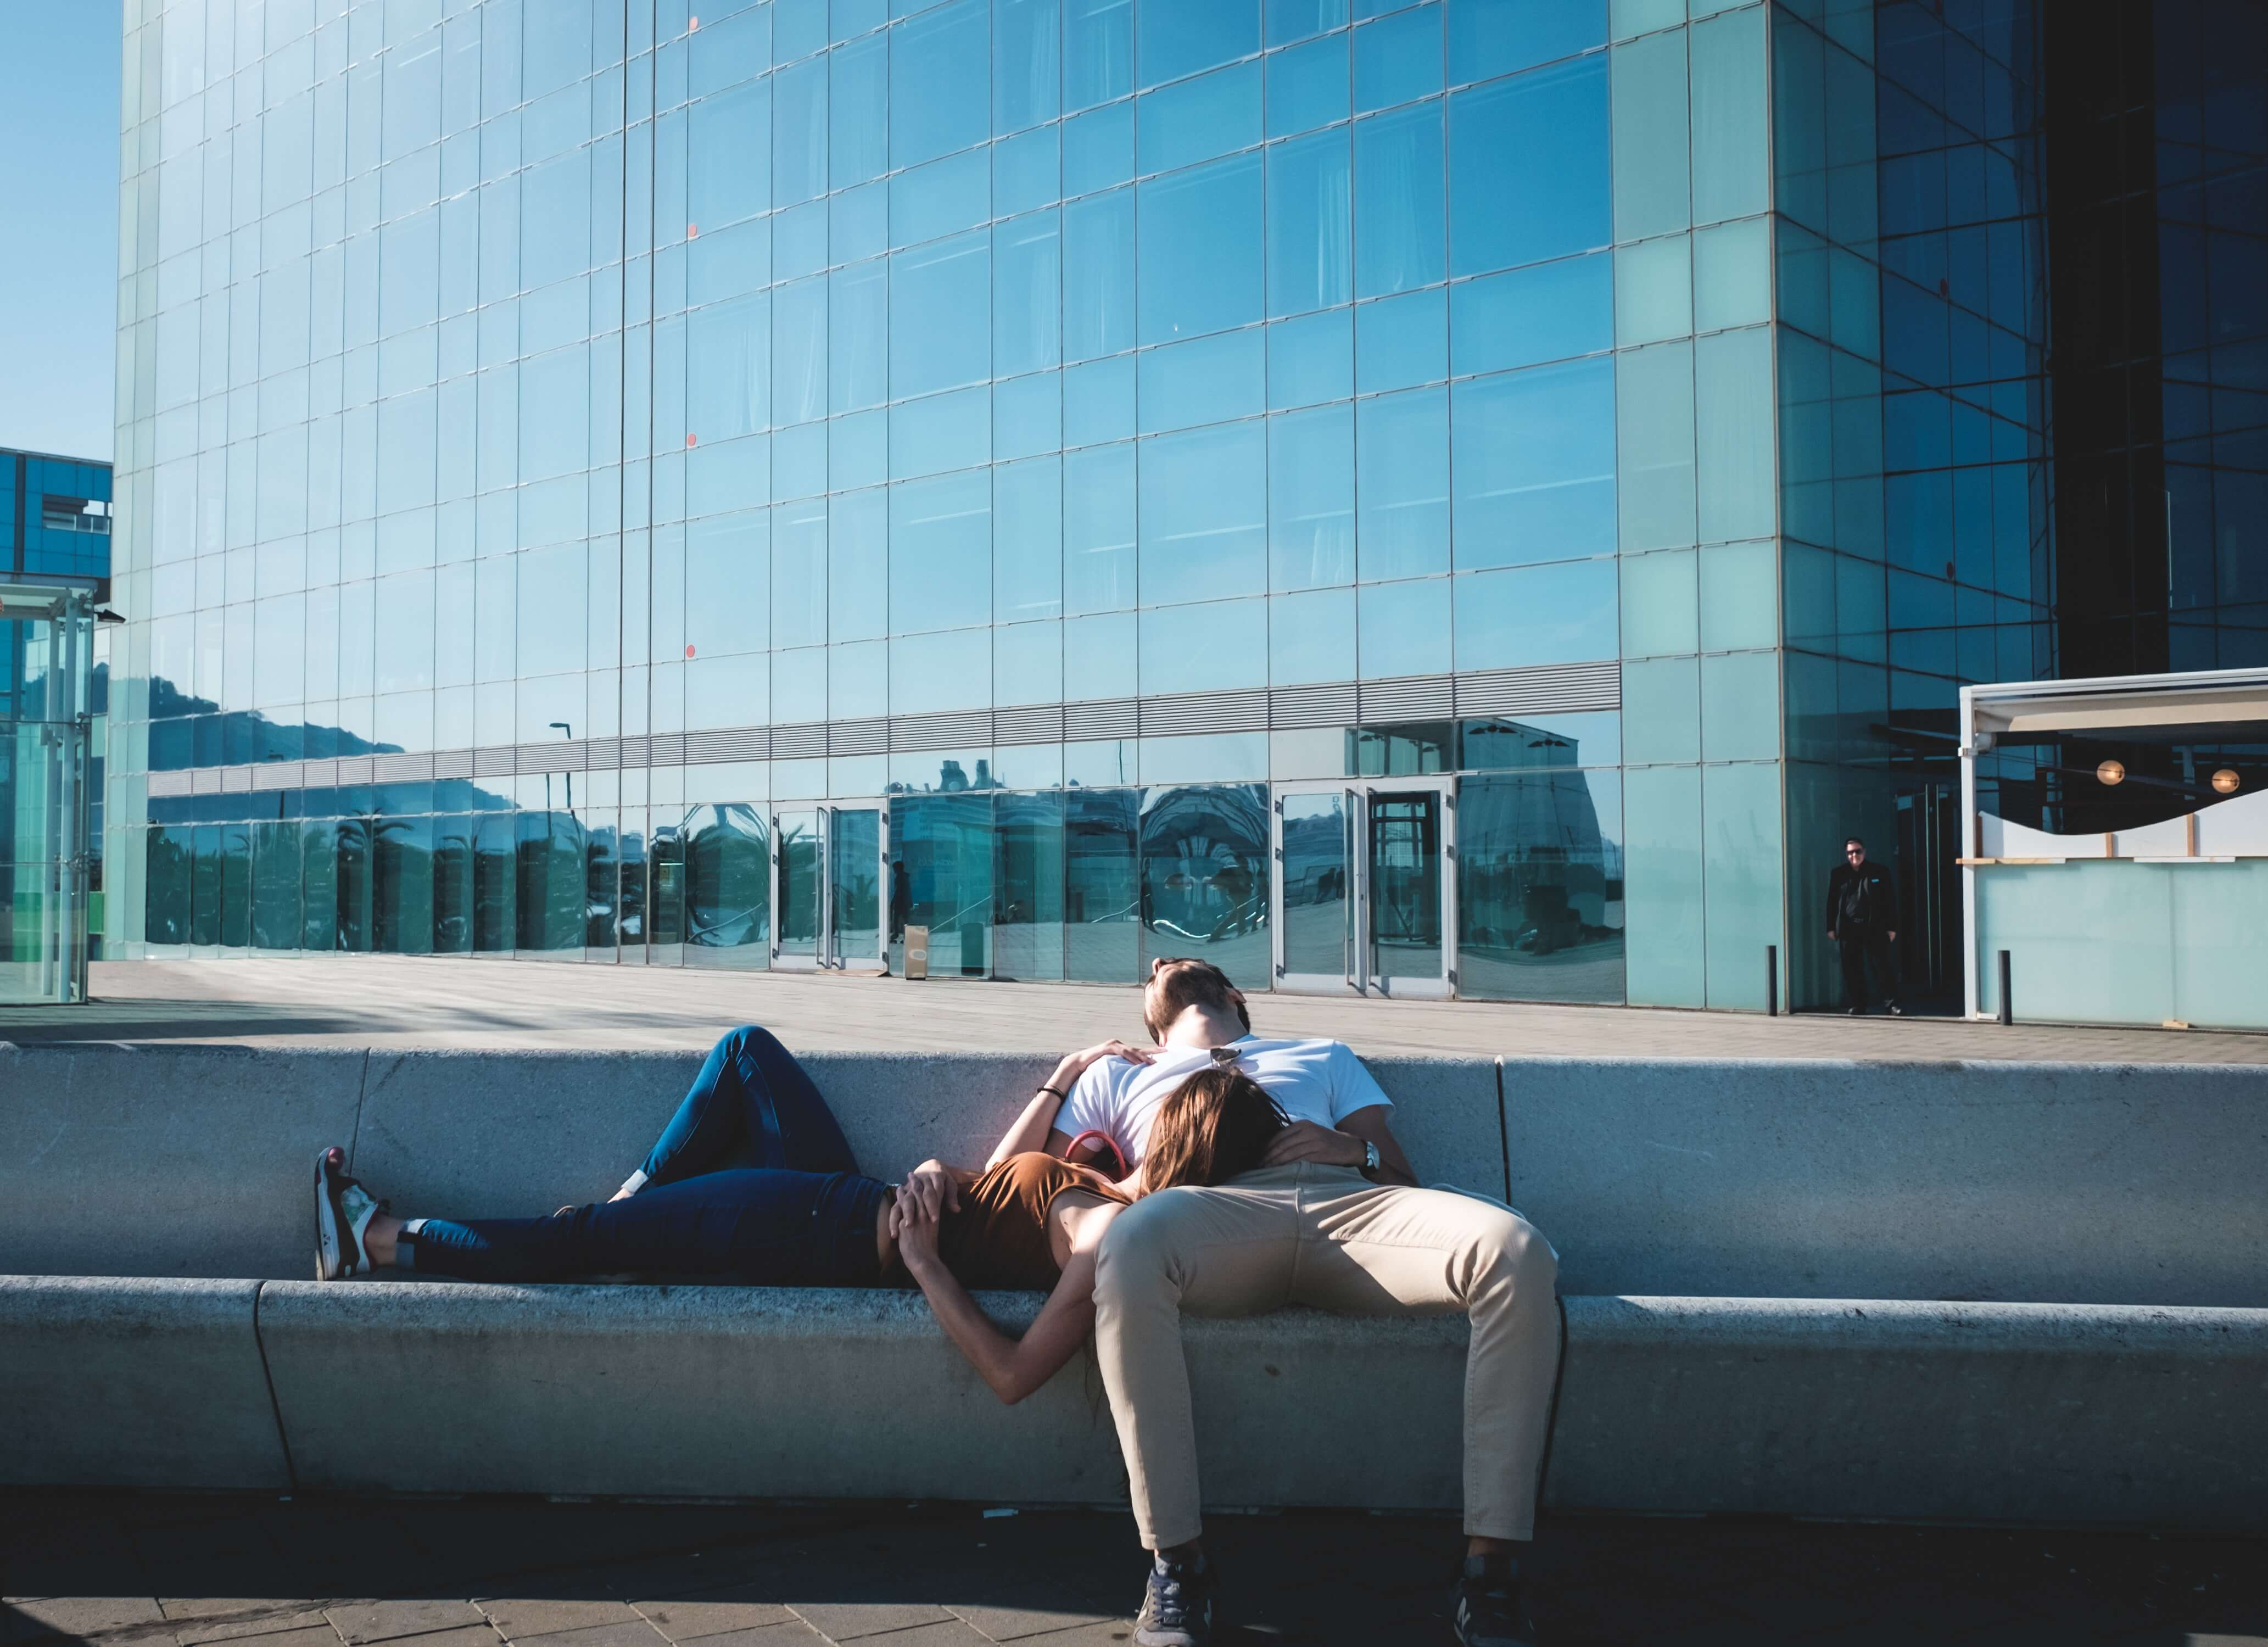 taking a siesta is common when living in spain as an american expat